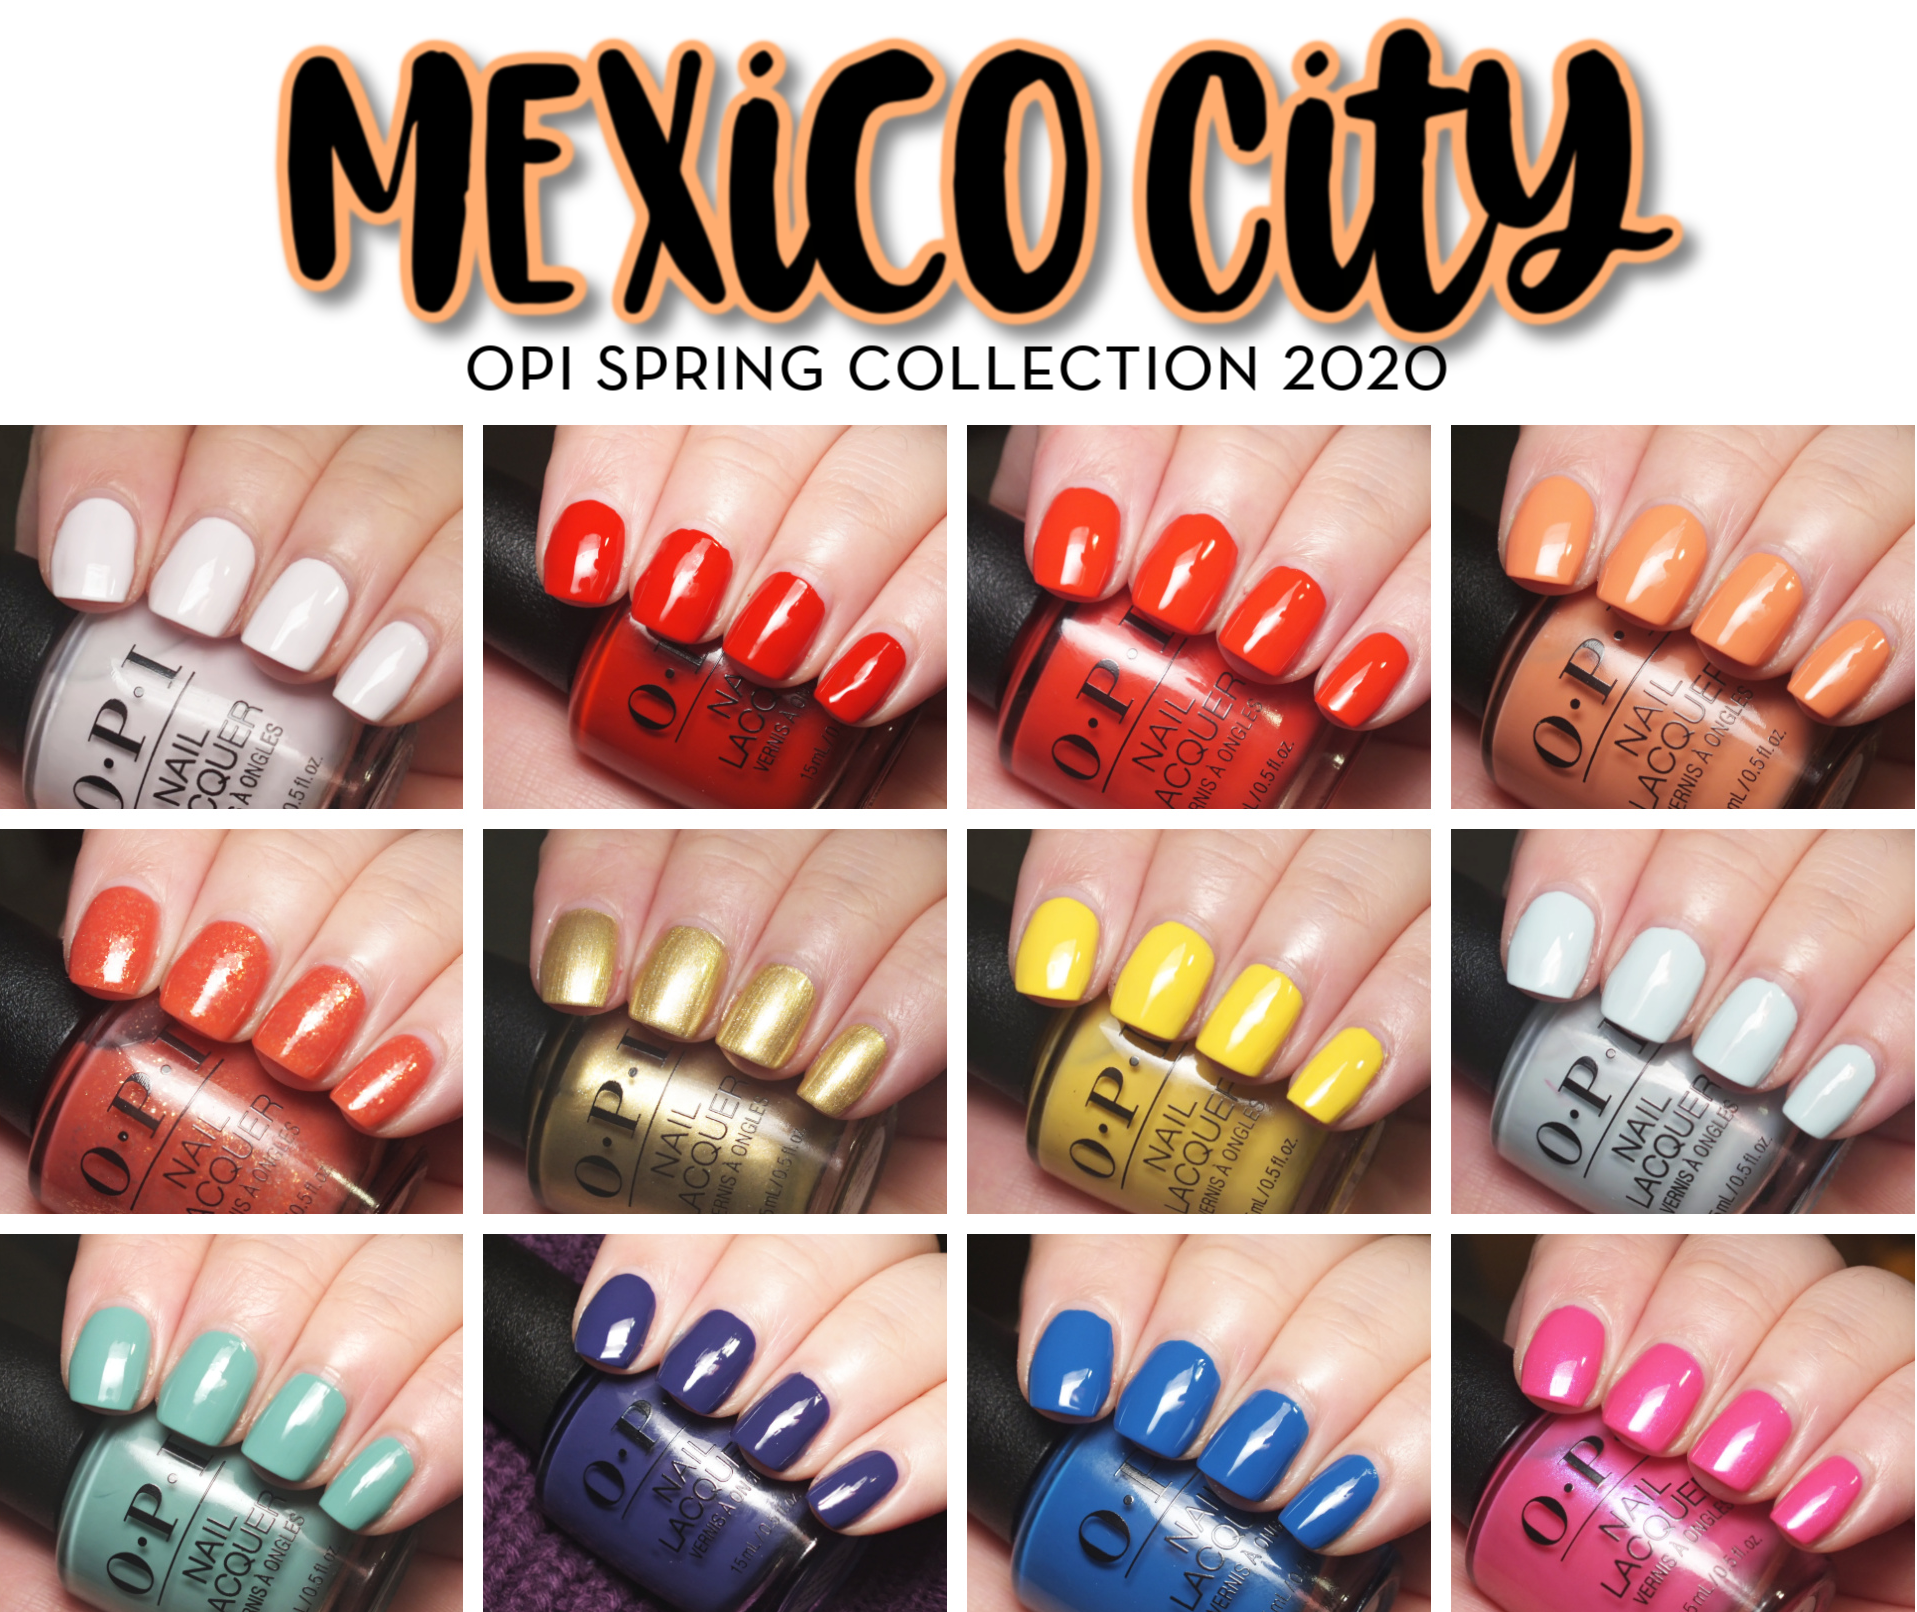 opi mexico collage - pin size